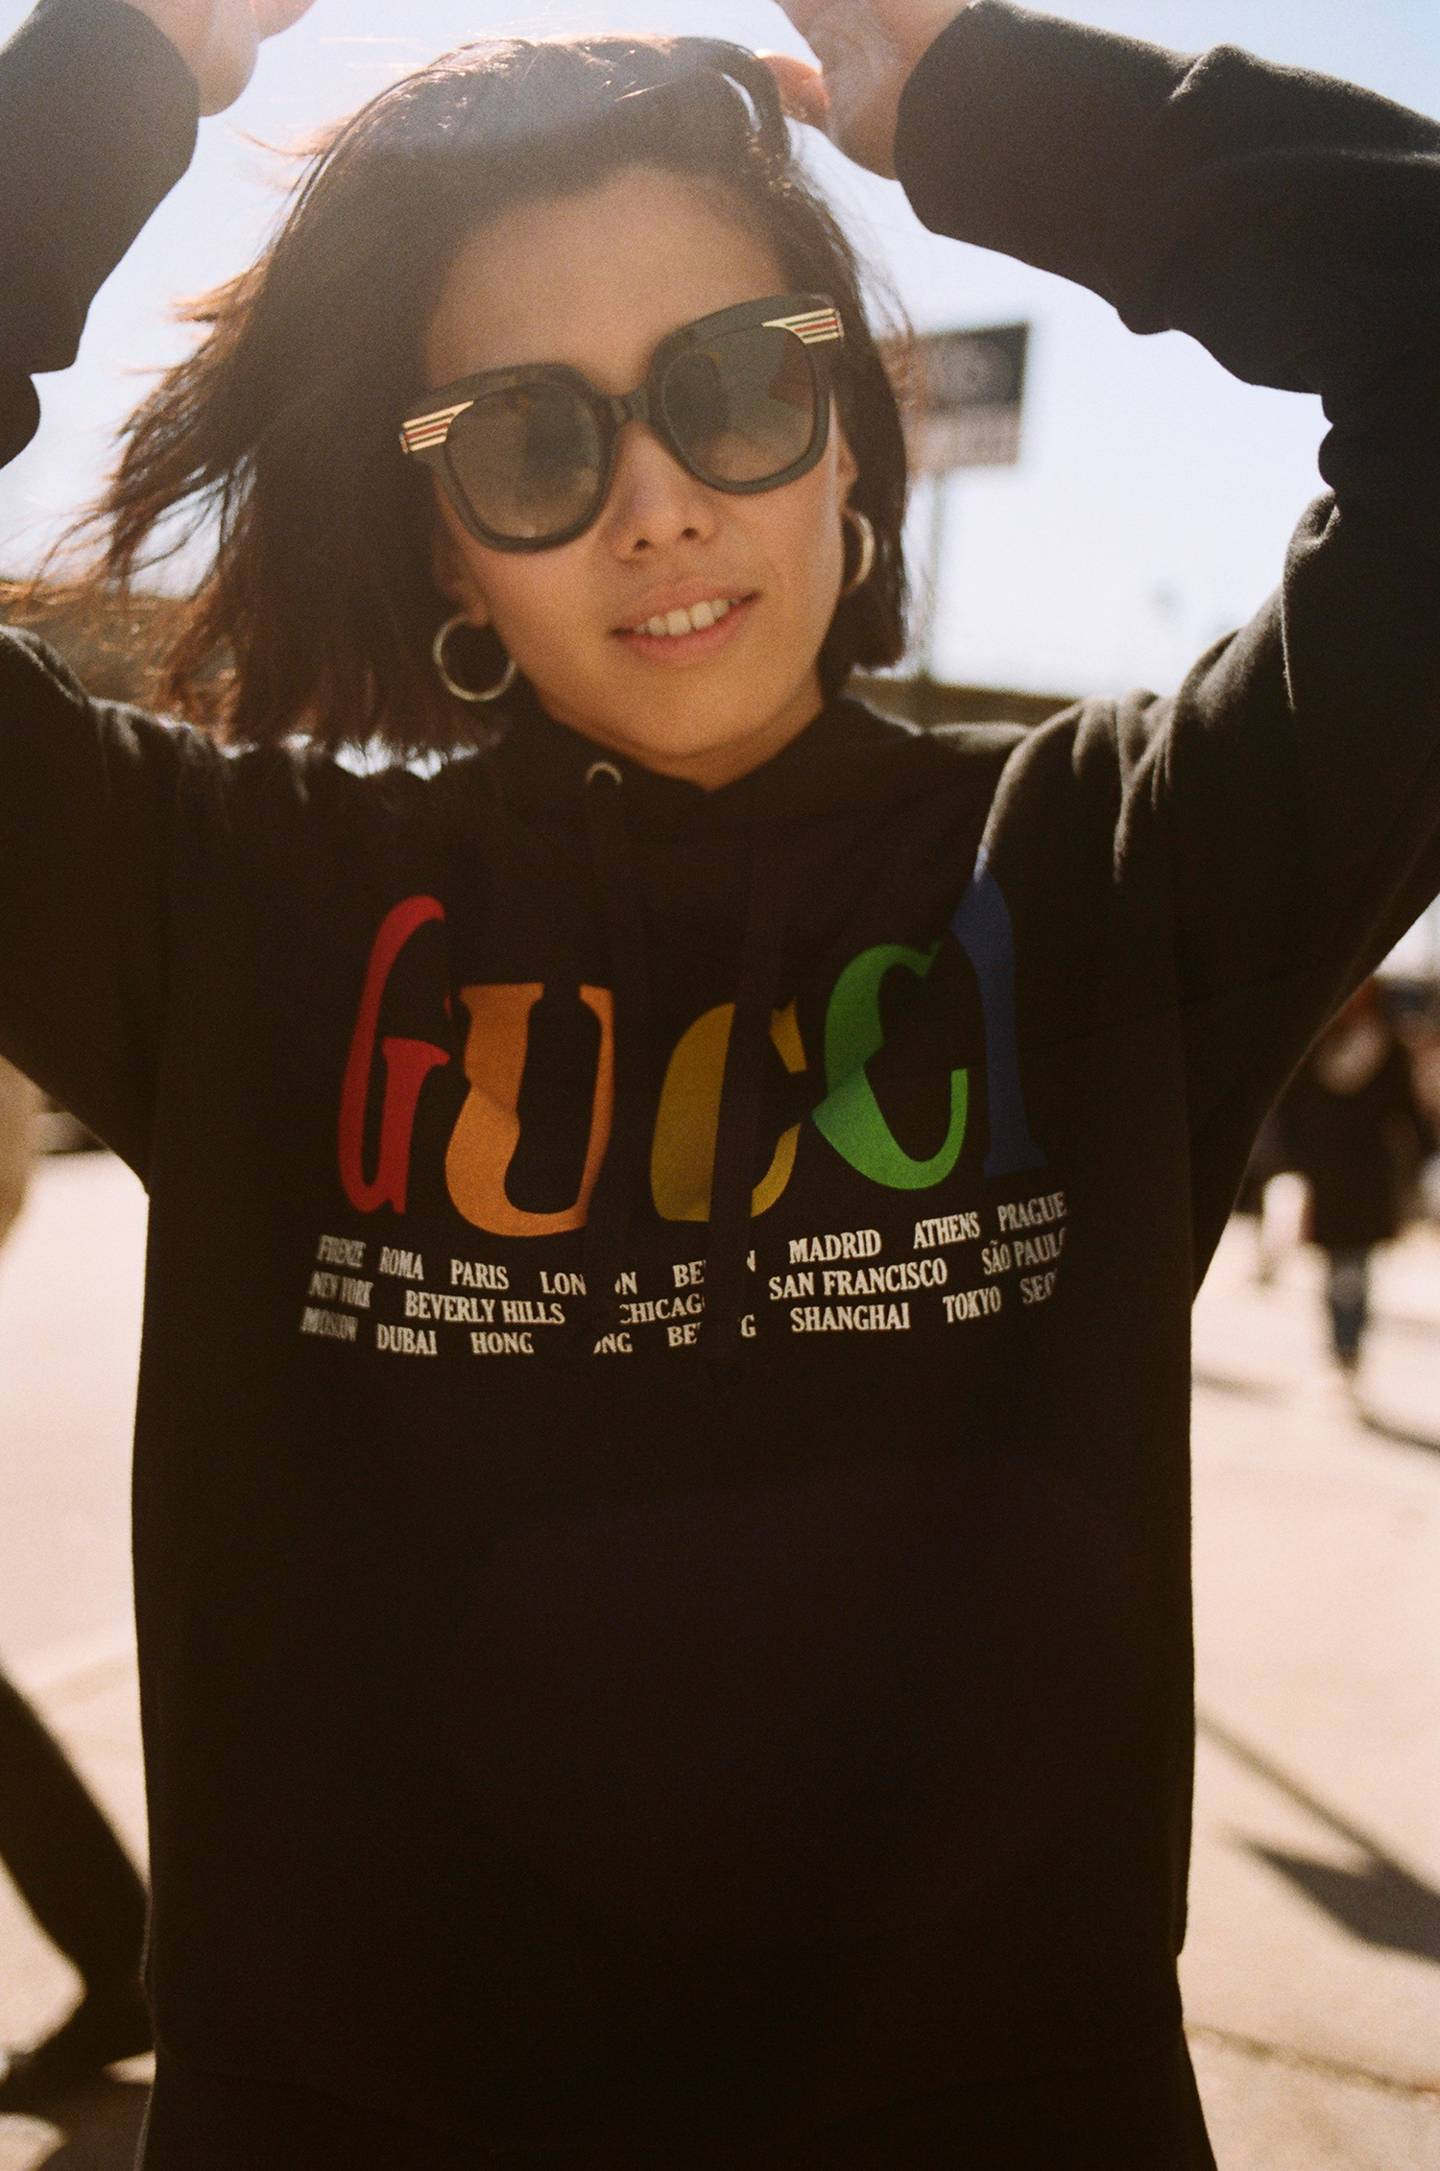 abb676d1 How to wear Gucci in 25 ways | British Vogue